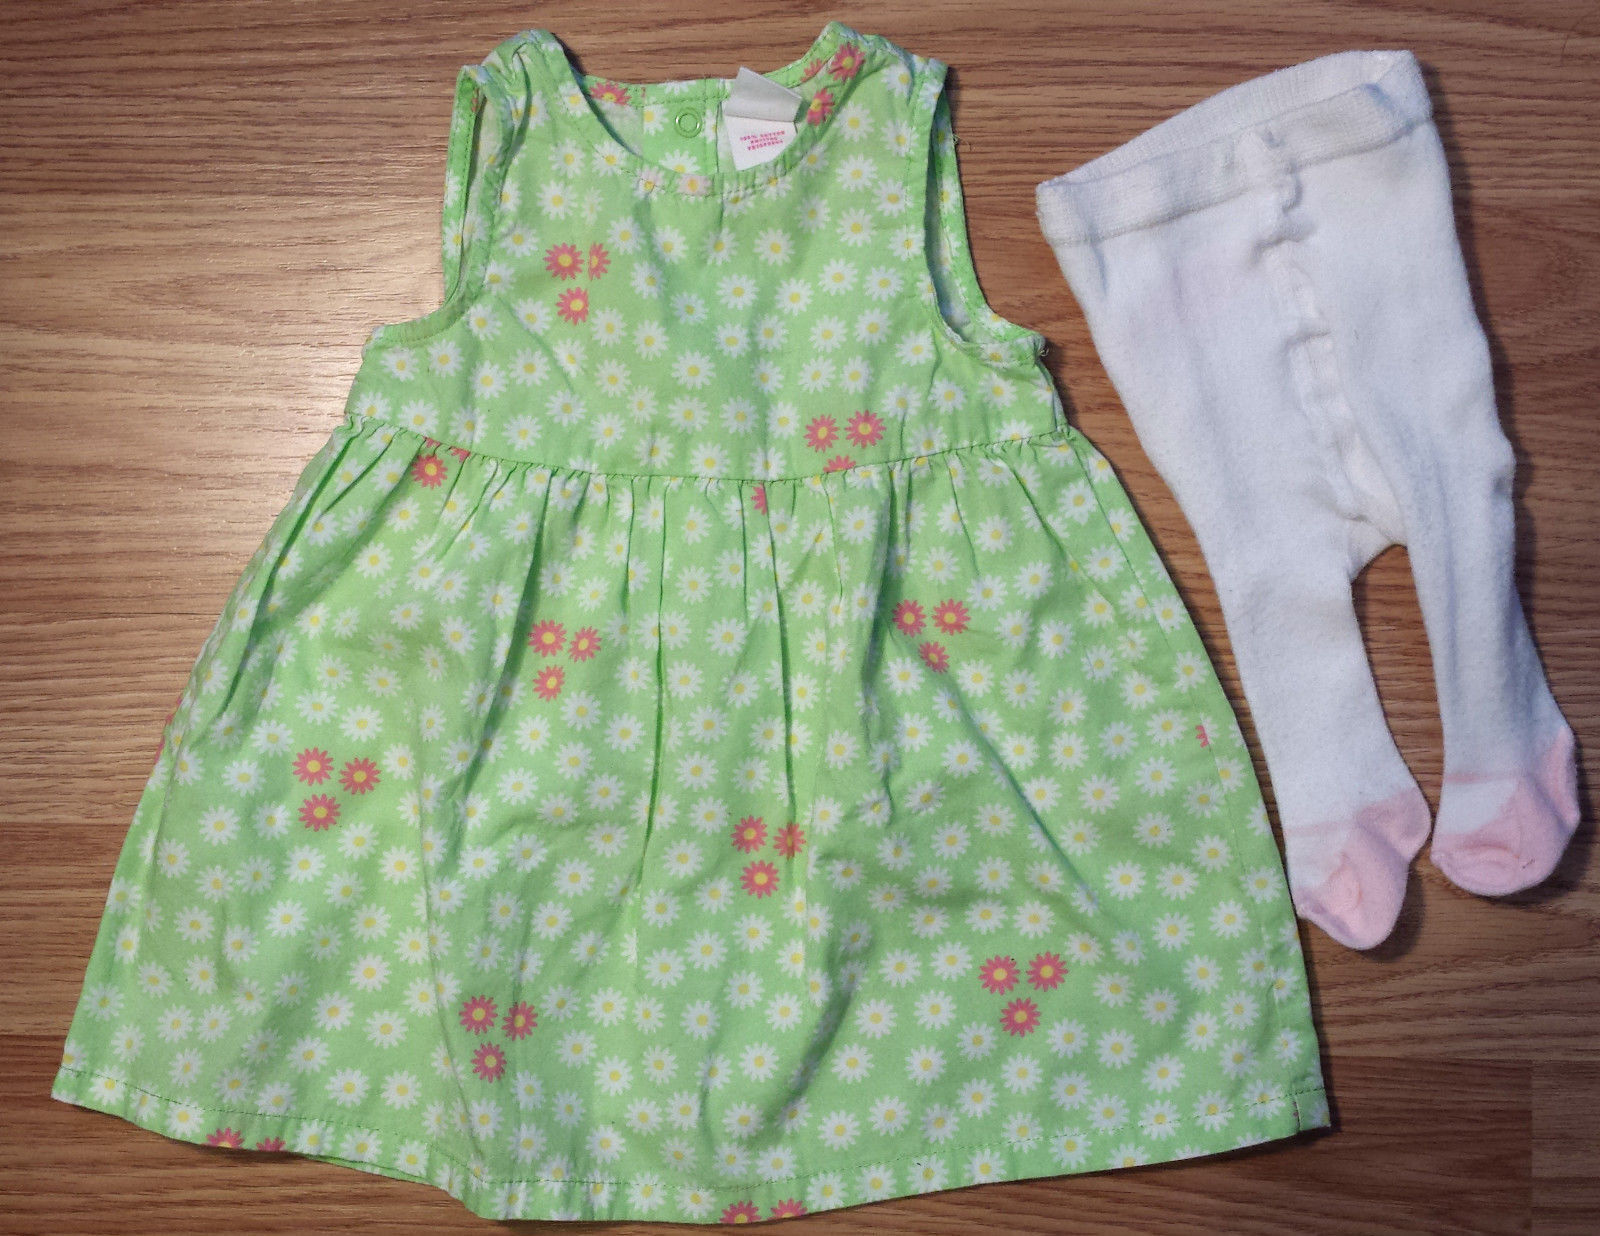 Girl's Size 3 M Month Two Piece Circo Green Floral Dress & White Carter's Tights